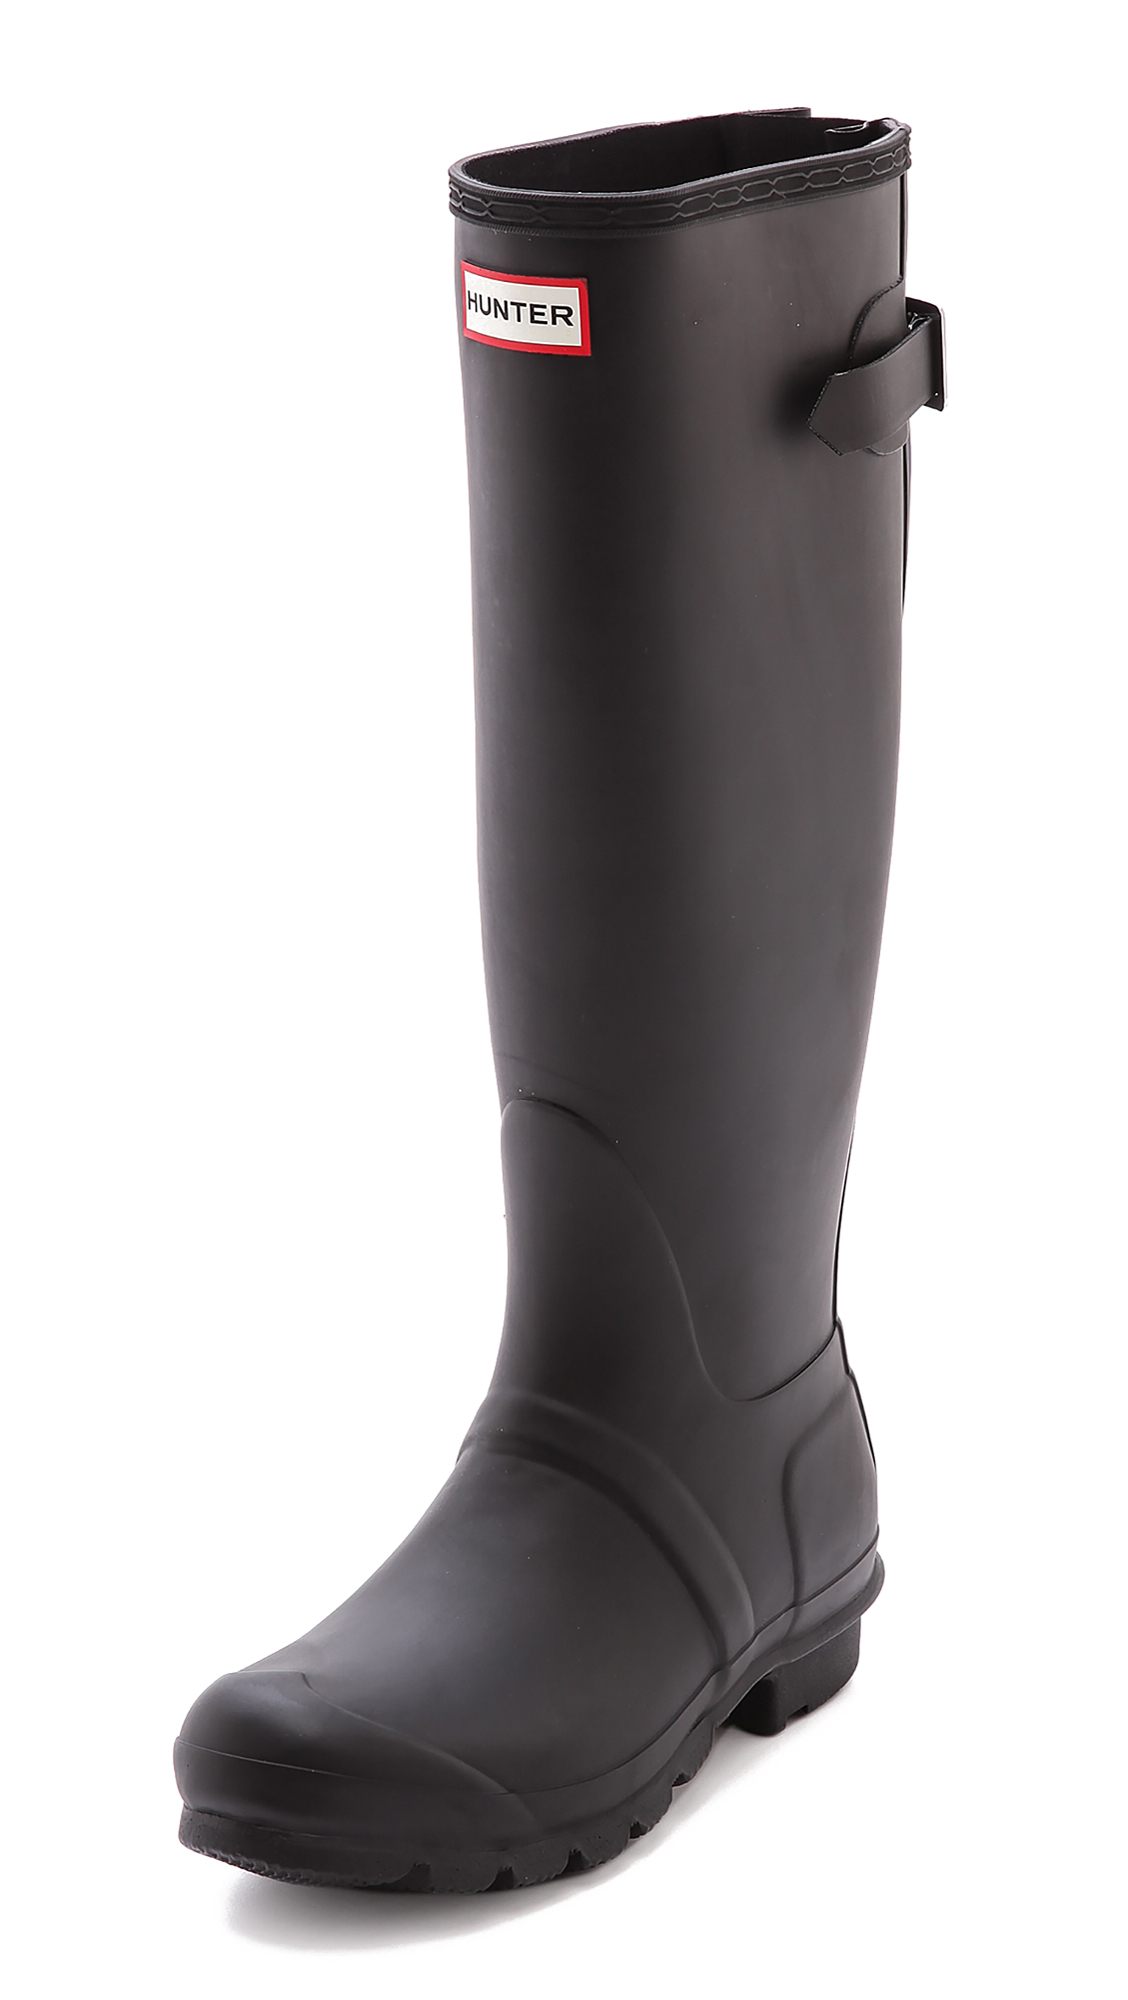 Hunter Boots Original Back Adjustable Boots - Black